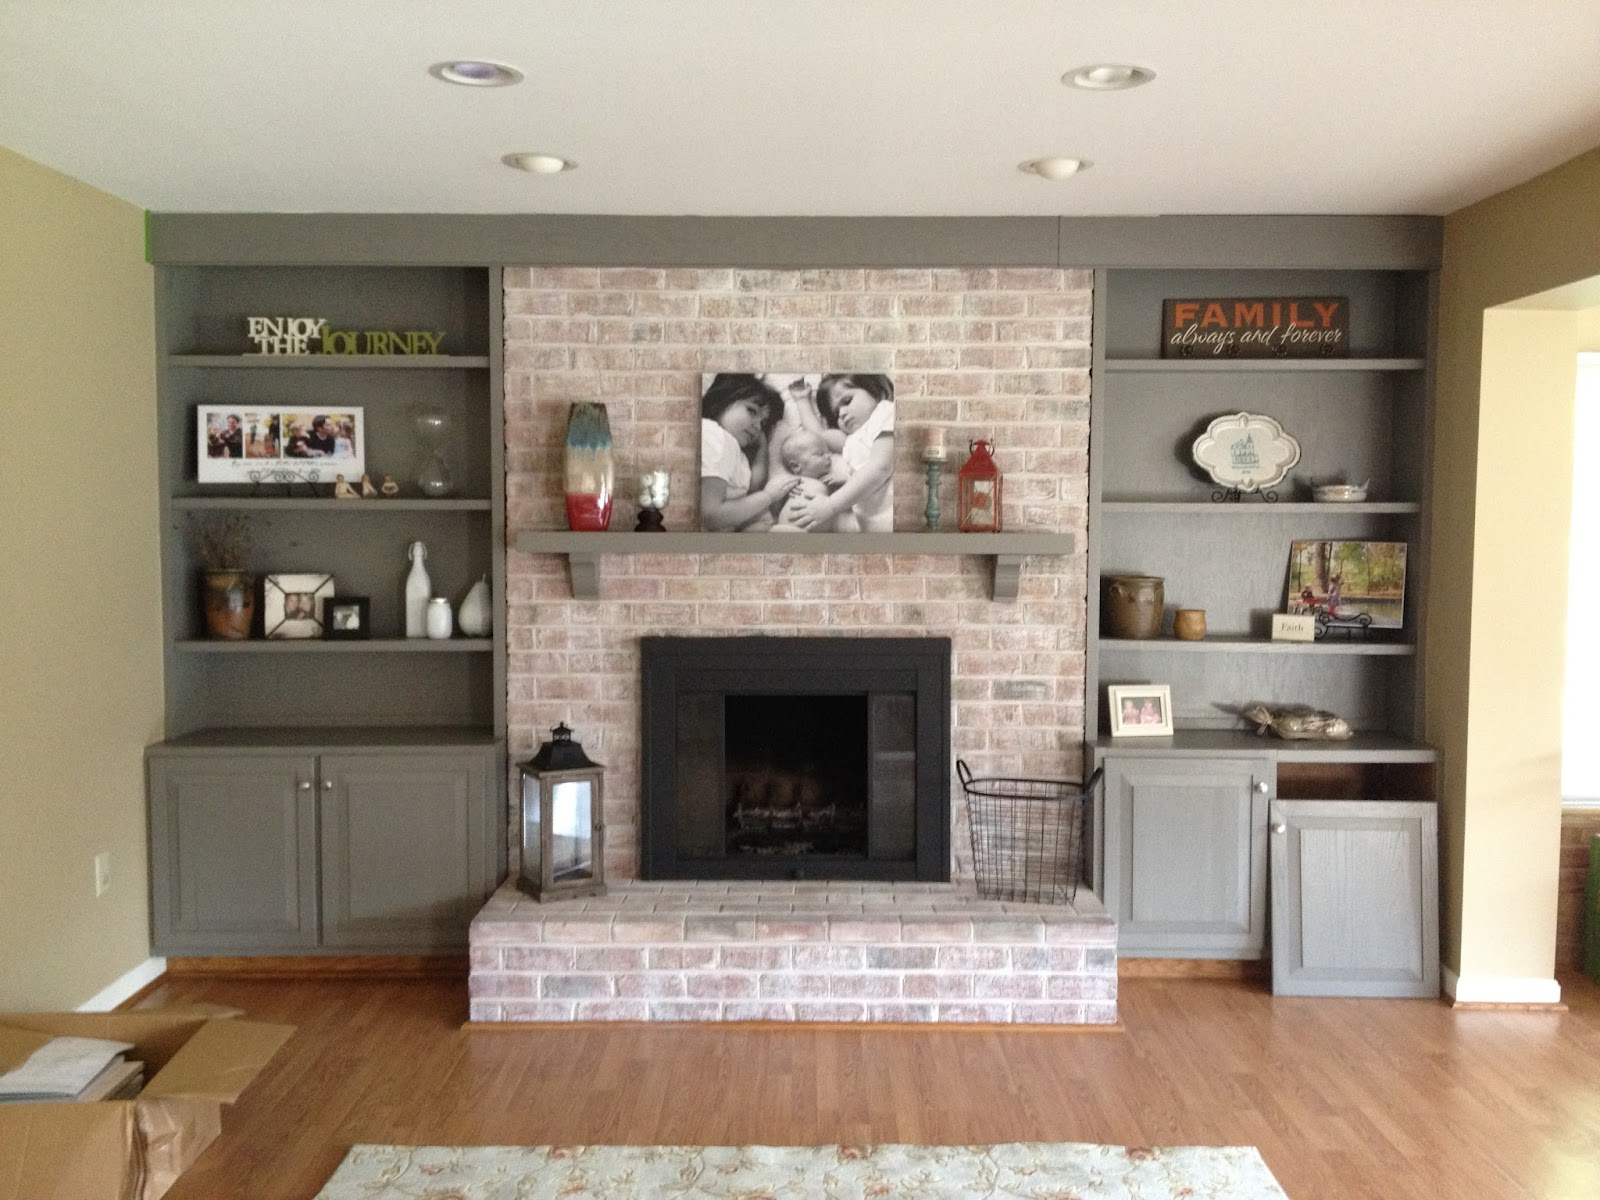 45 Fireplace Decoration Ideas So Can You The Creative: How To Paint A Brick Fireplace